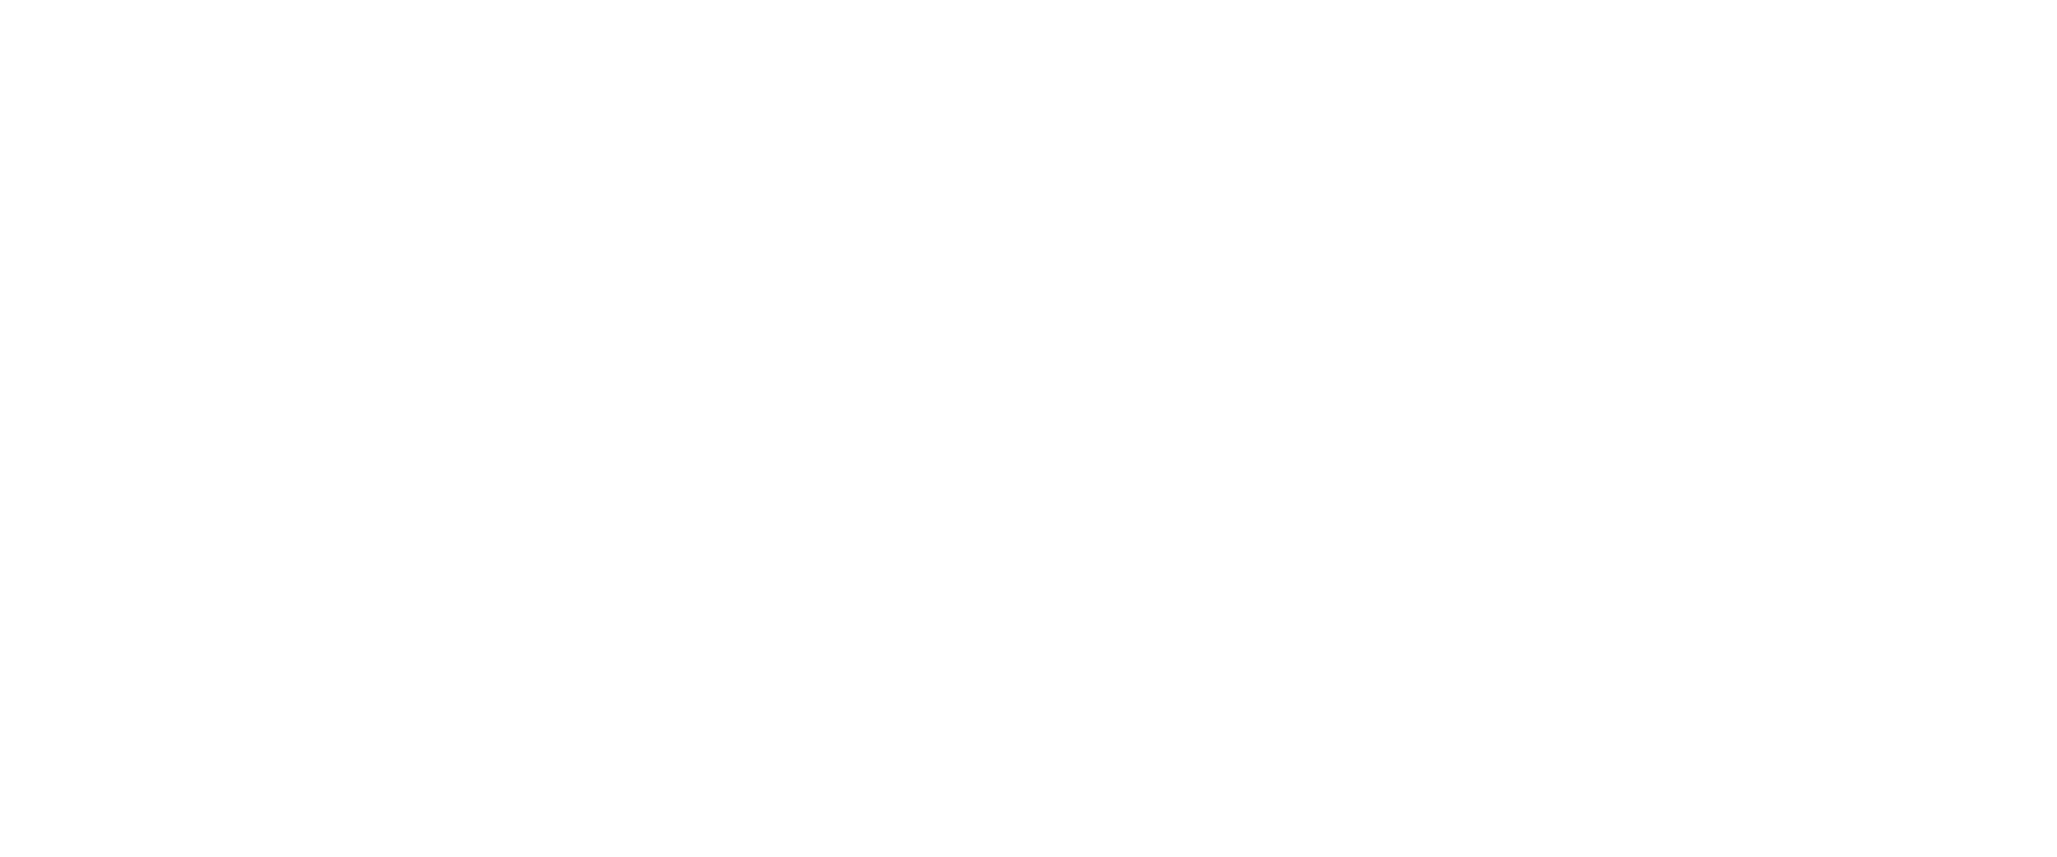 https://byronwritersfestival.com/wp-content/uploads/2021/05/Regional-Arts-NSW-White.png